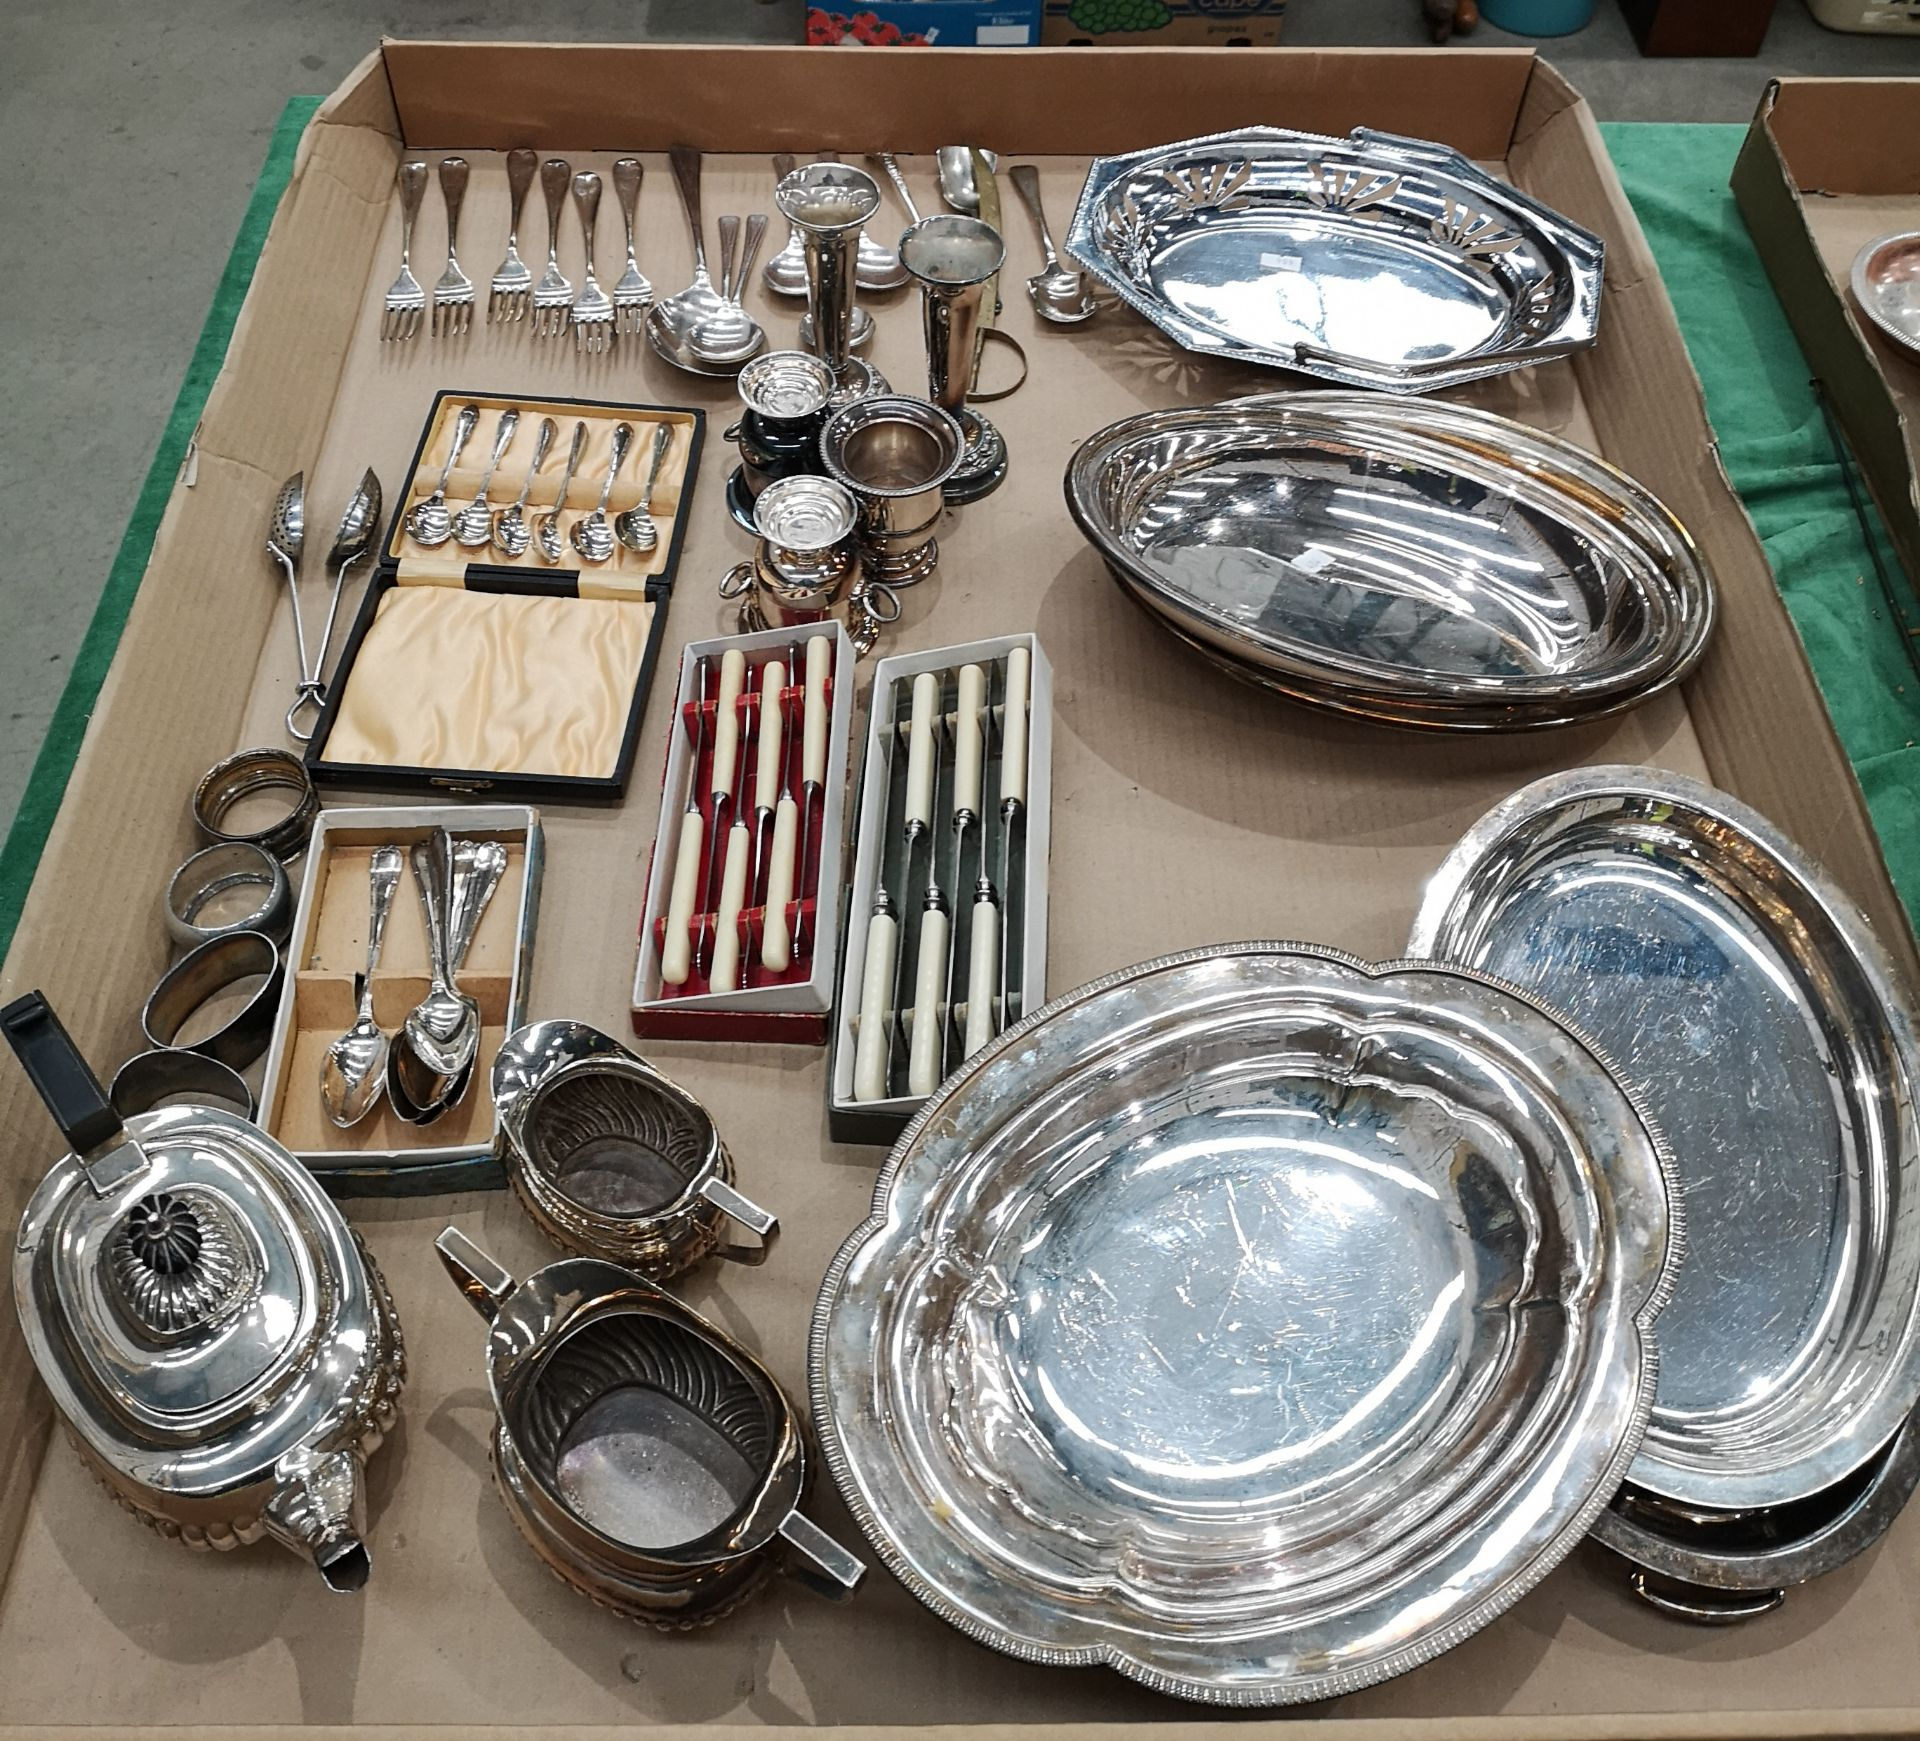 Lot 28 - Contents to tray - large quantity of assorted plated ware - 3 piece tea set.